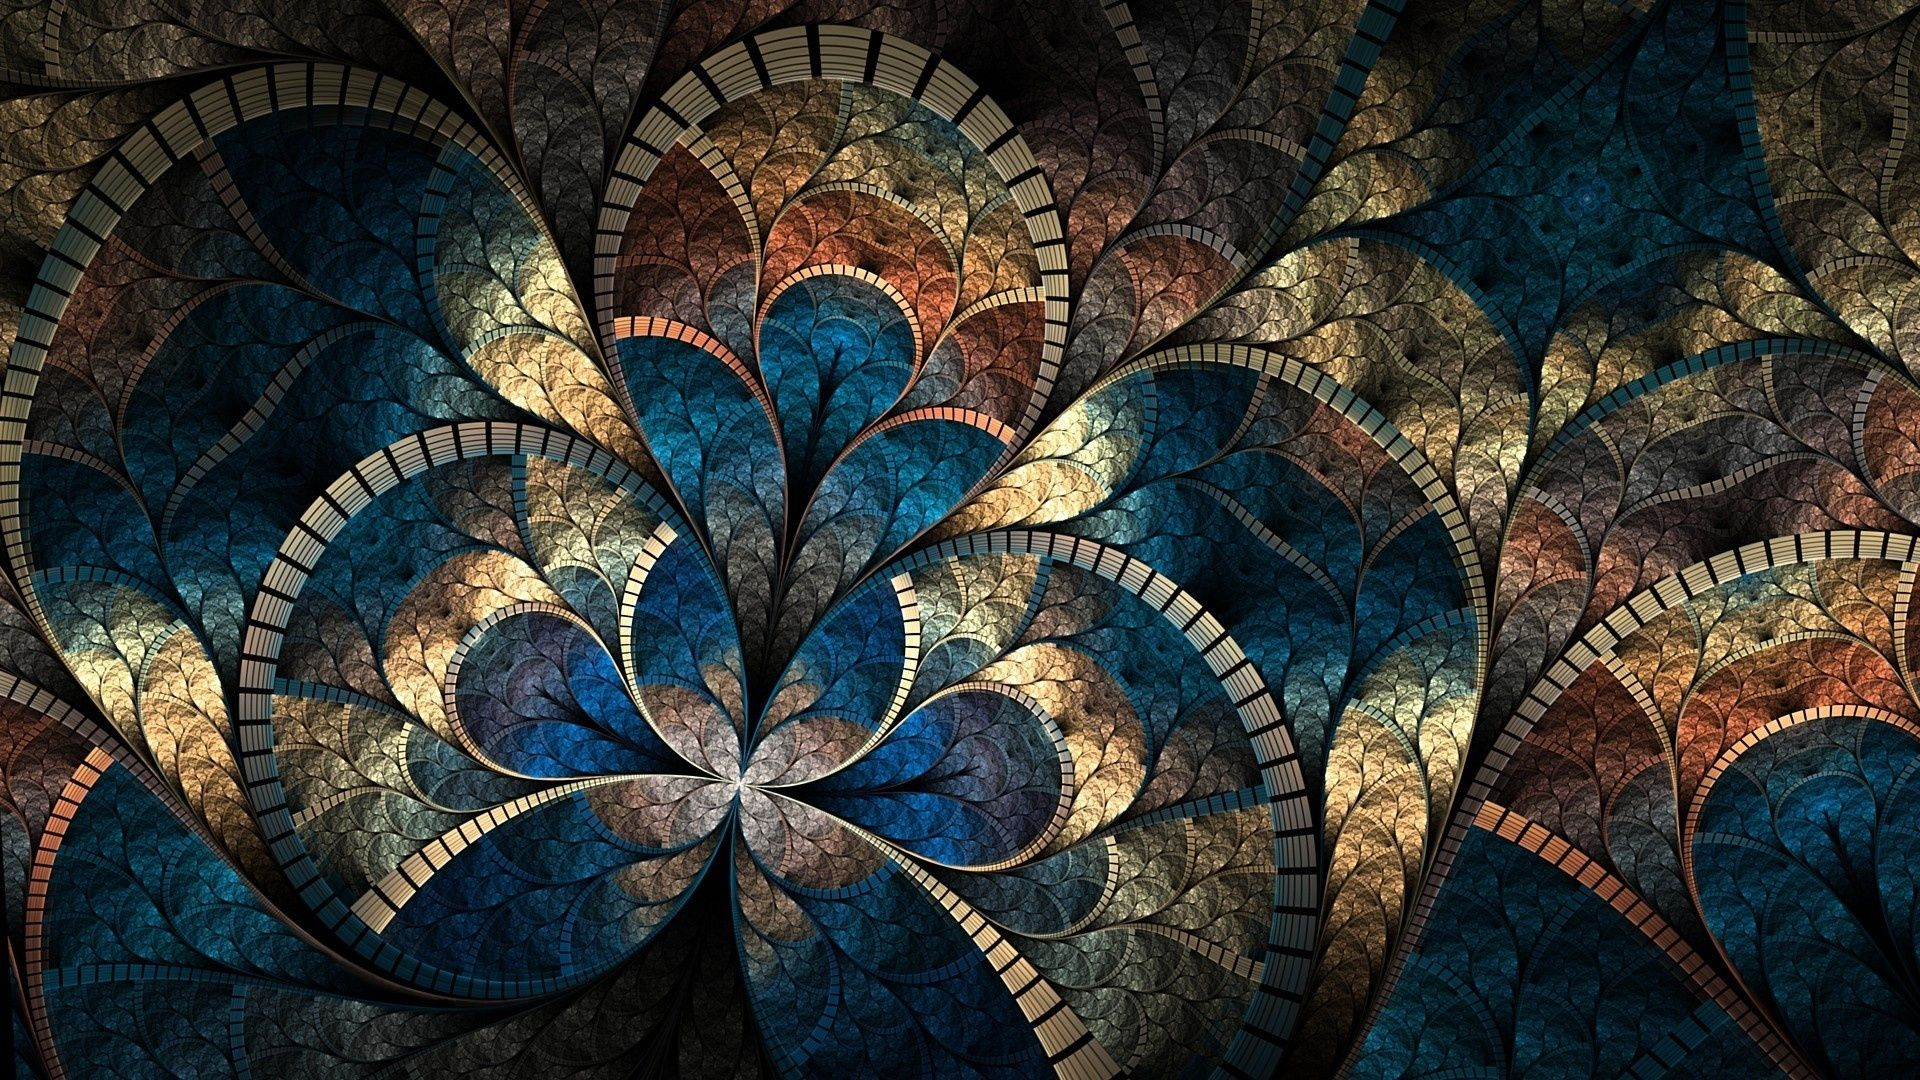 Abstract Pictures, Images High Quality